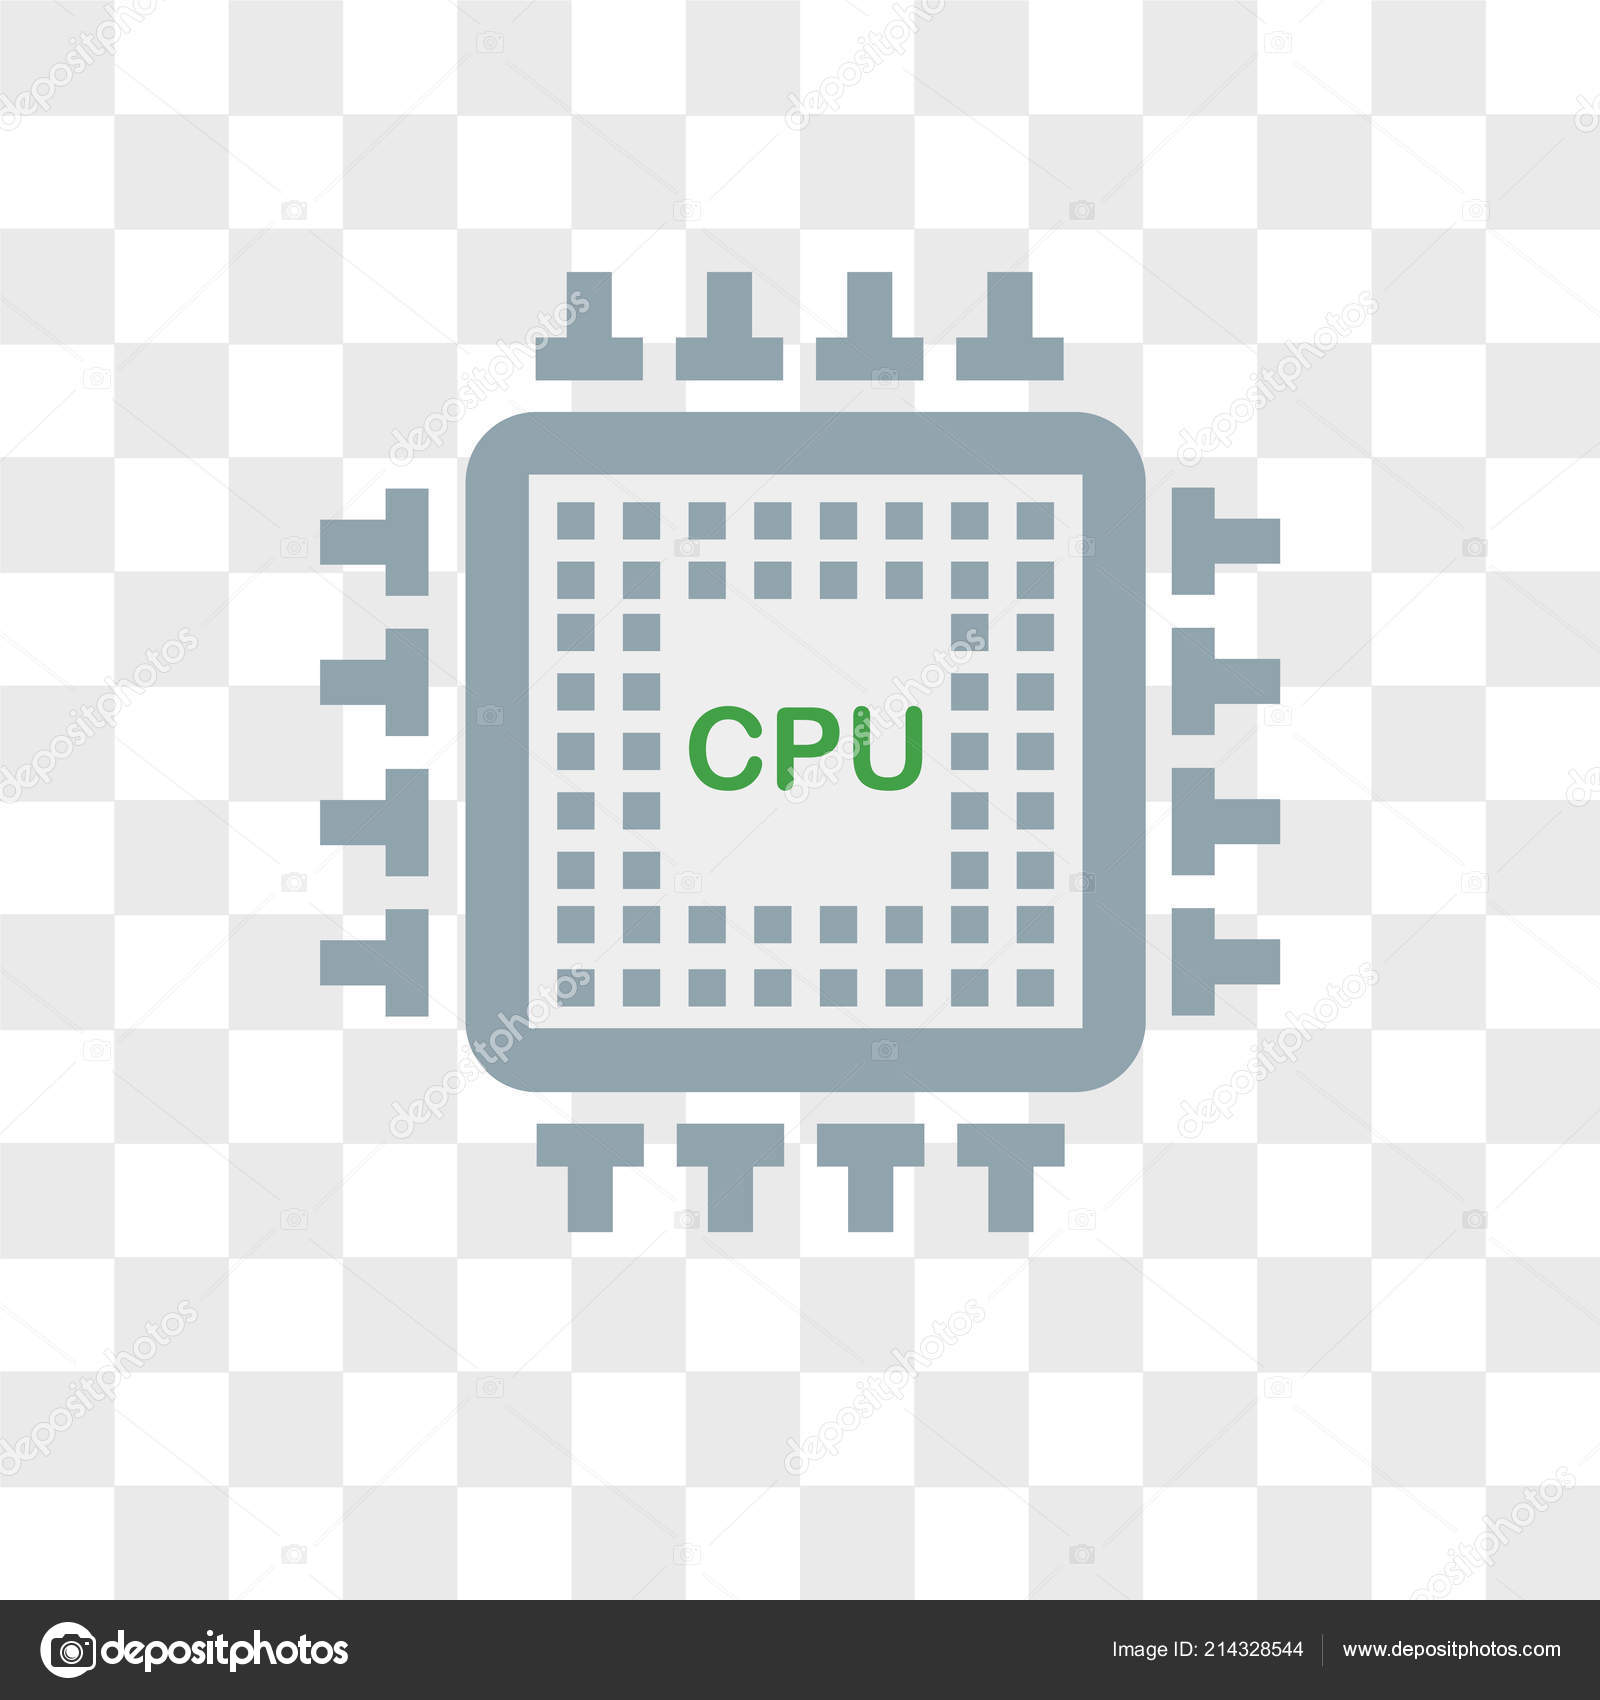 cpu vector icon isolated on transparent background cpu logo des stock vector c provectorstock 214328544 https depositphotos com 214328544 stock illustration cpu vector icon isolated on html